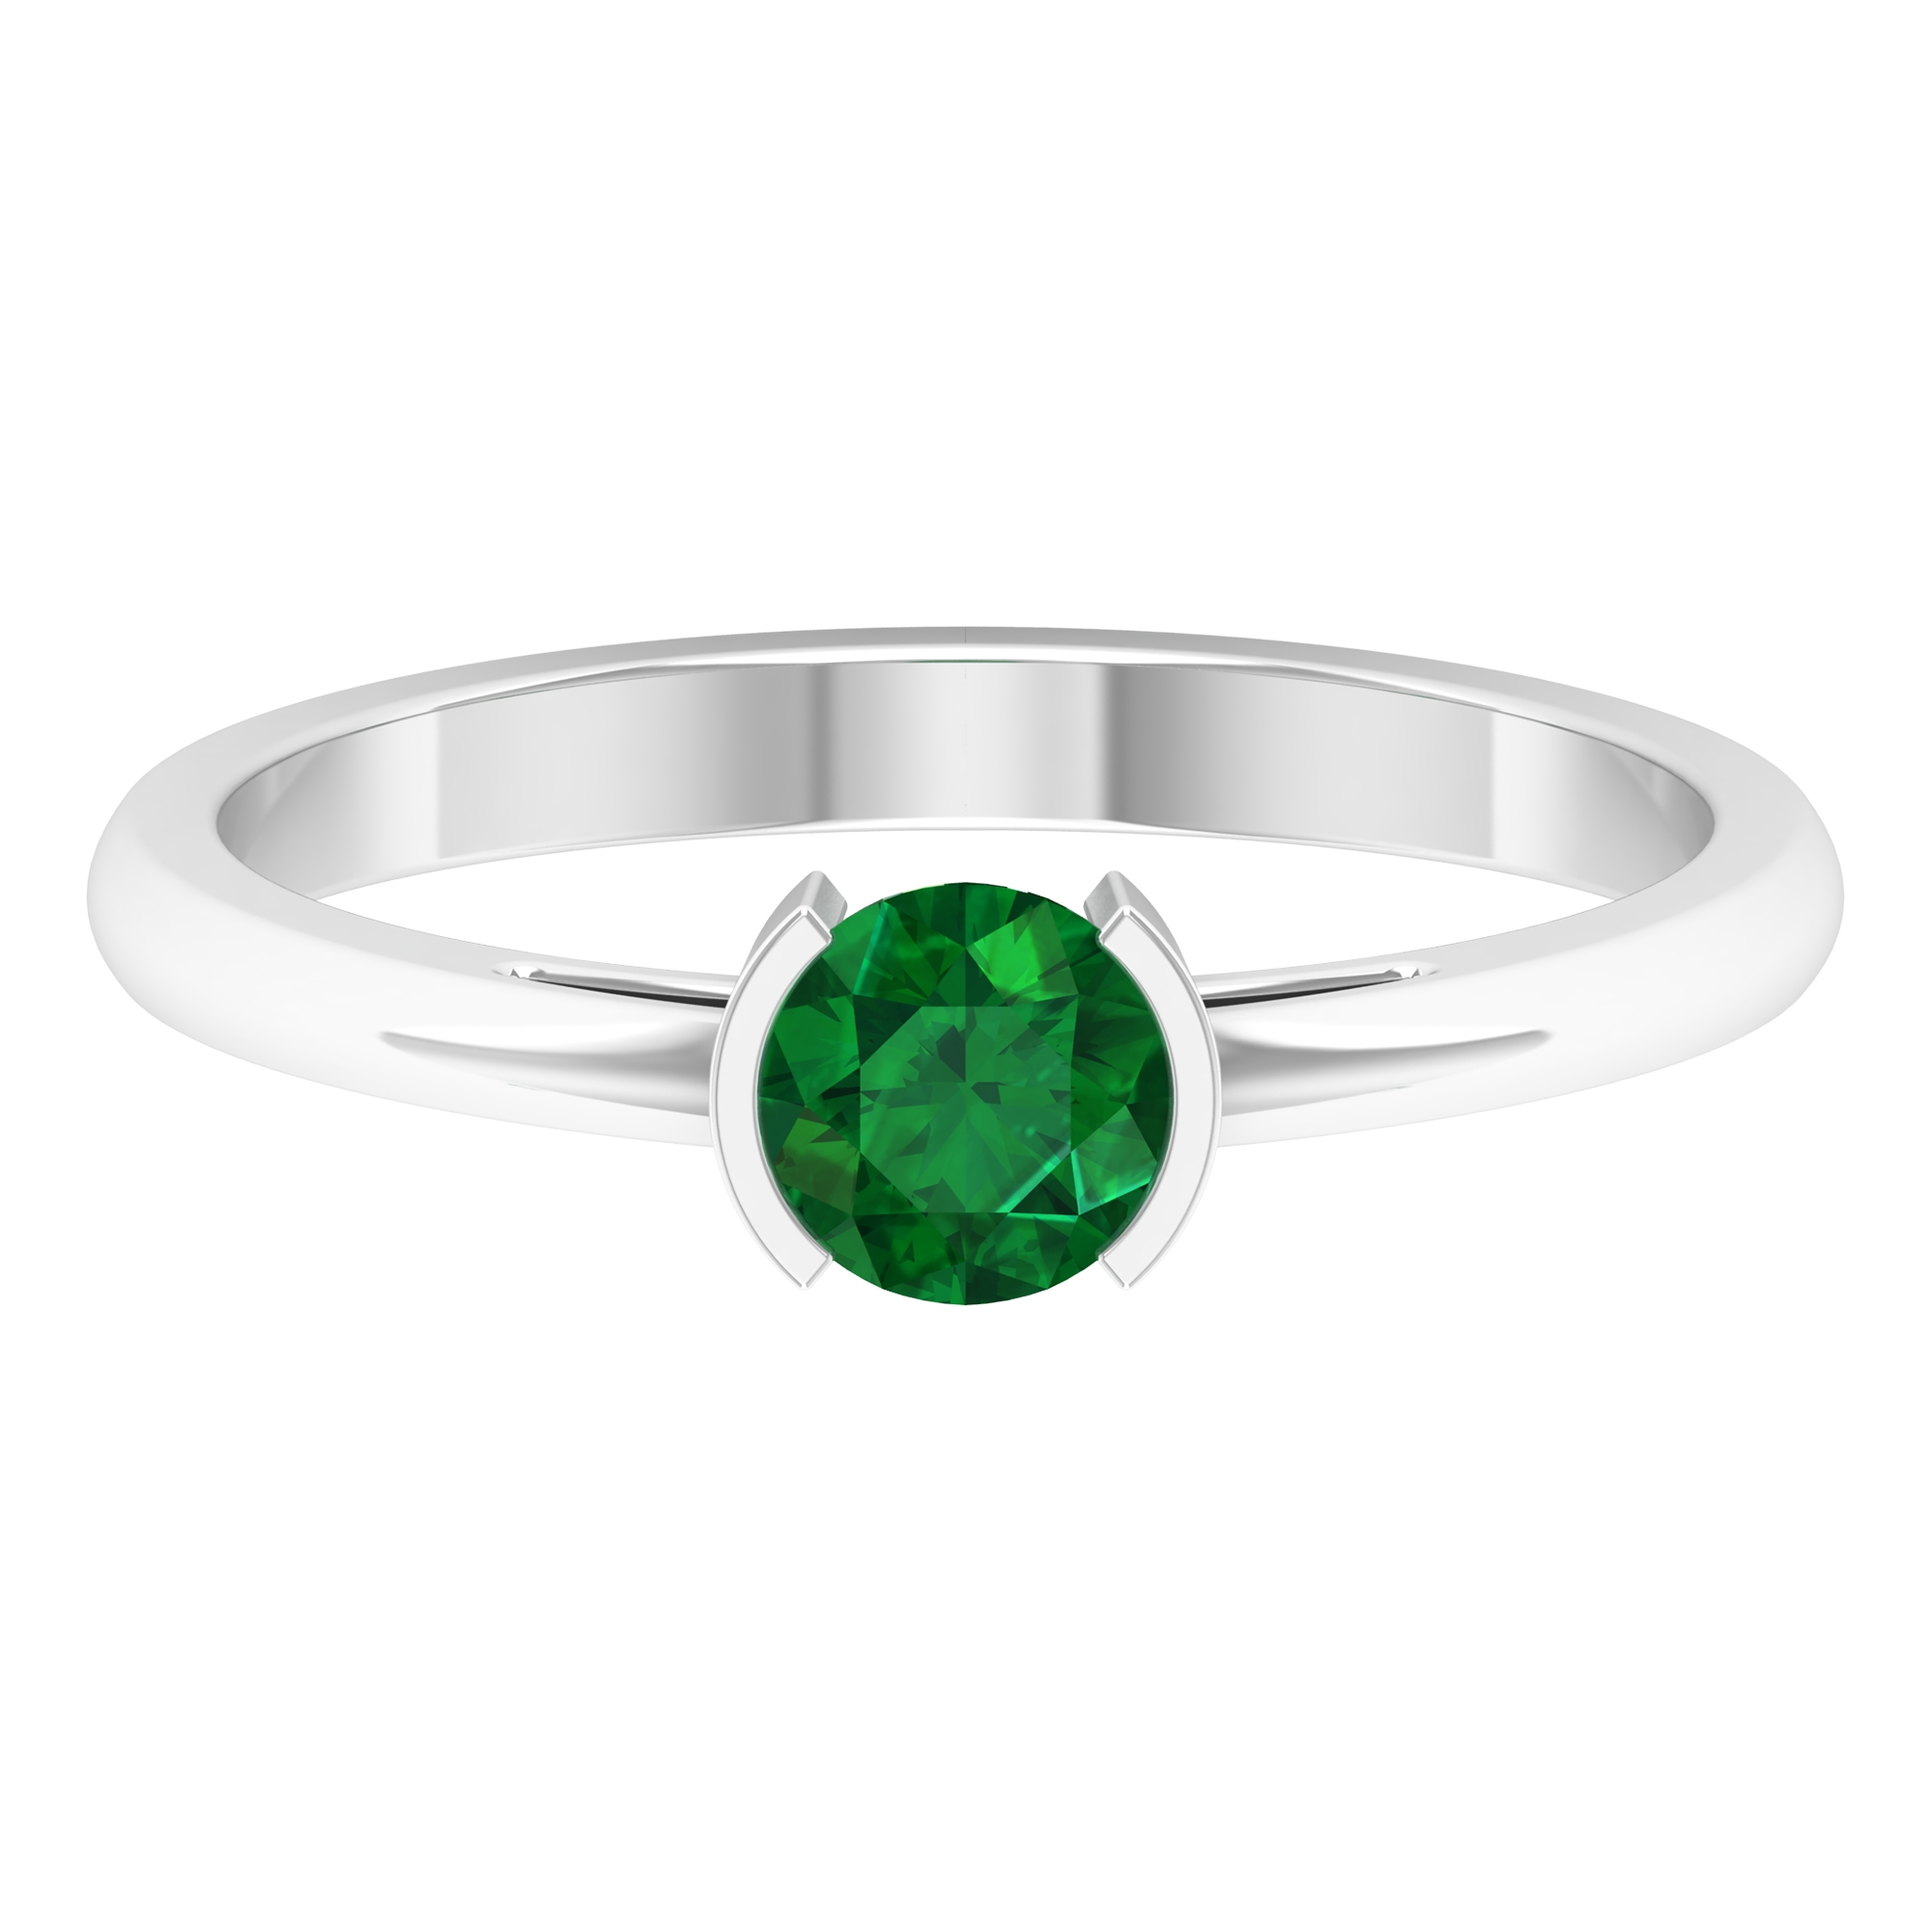 5 MM Round Shape Emerald Solitaire Ring in Half Bezel Setting